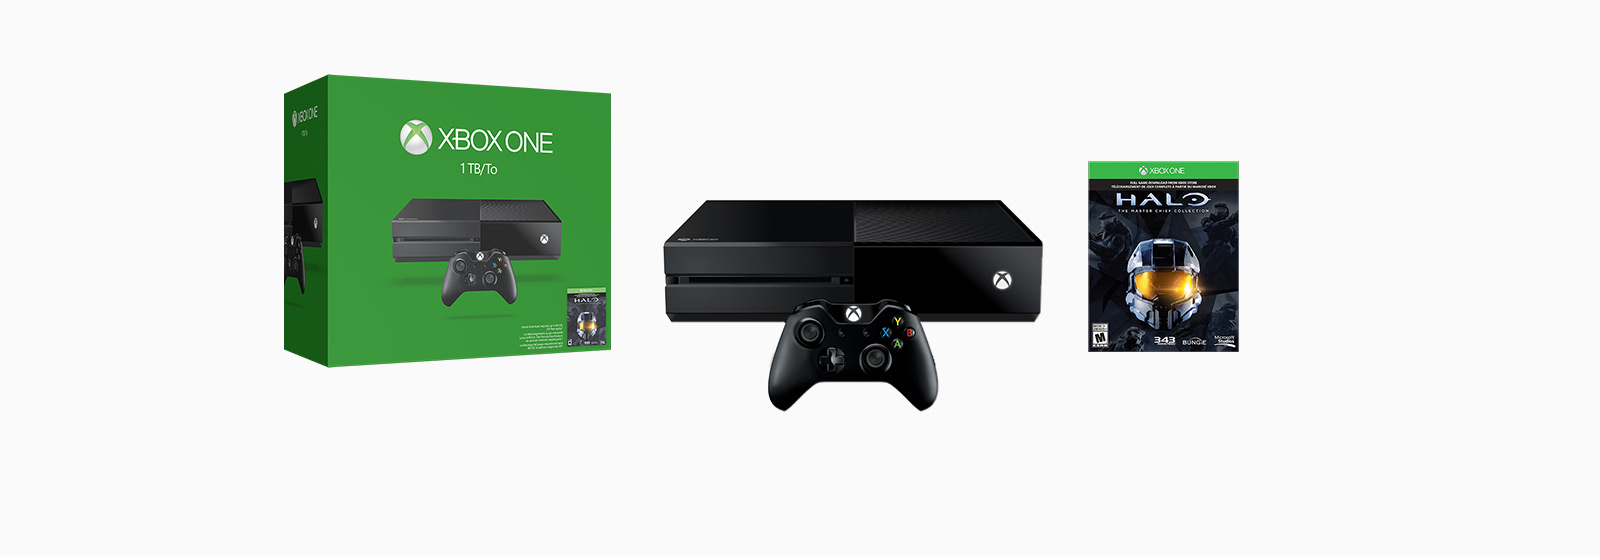 Learn about the new 1 TB Xbox One console.